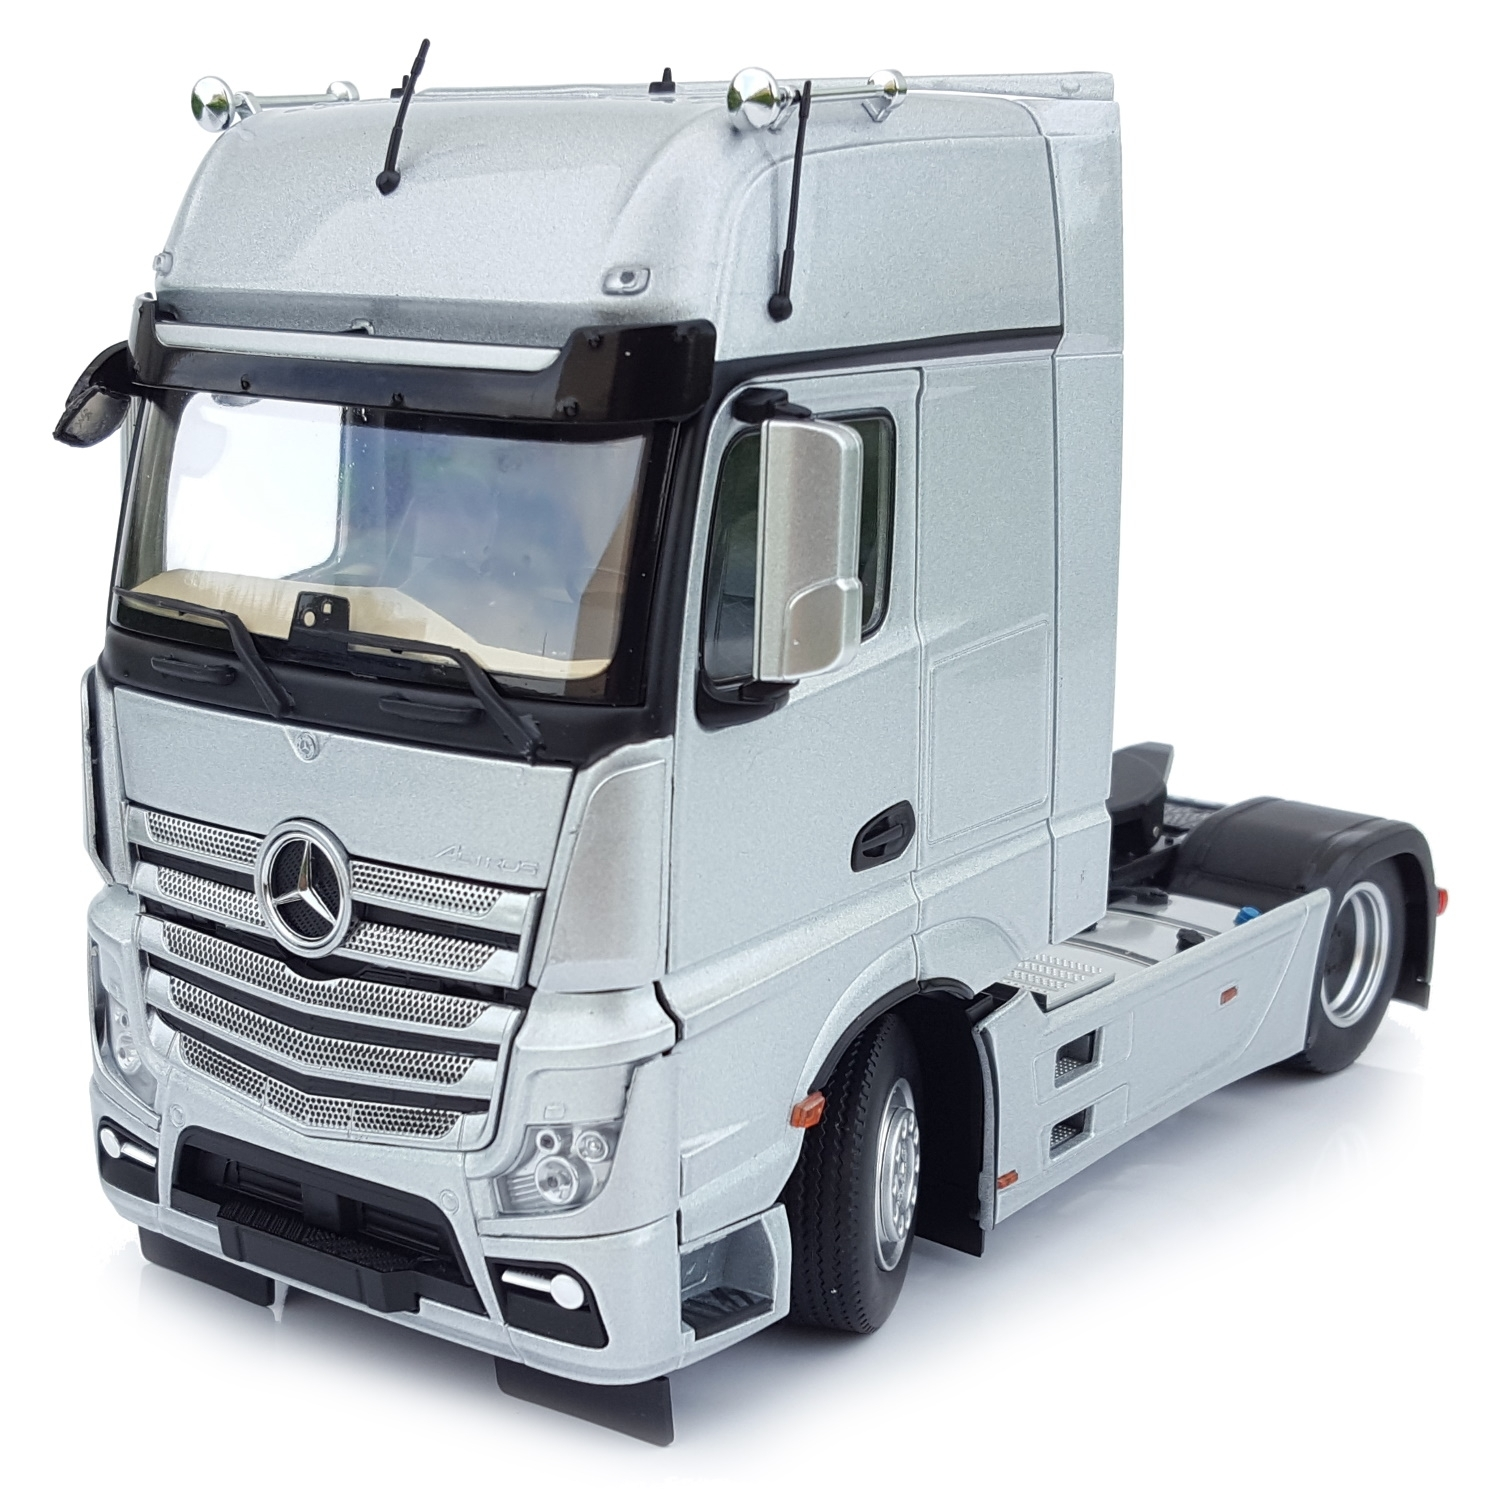 1911-03 - MarGe Models - Mercedes-Benz Actros GigaSpace 4x2 truck tractor,  silver